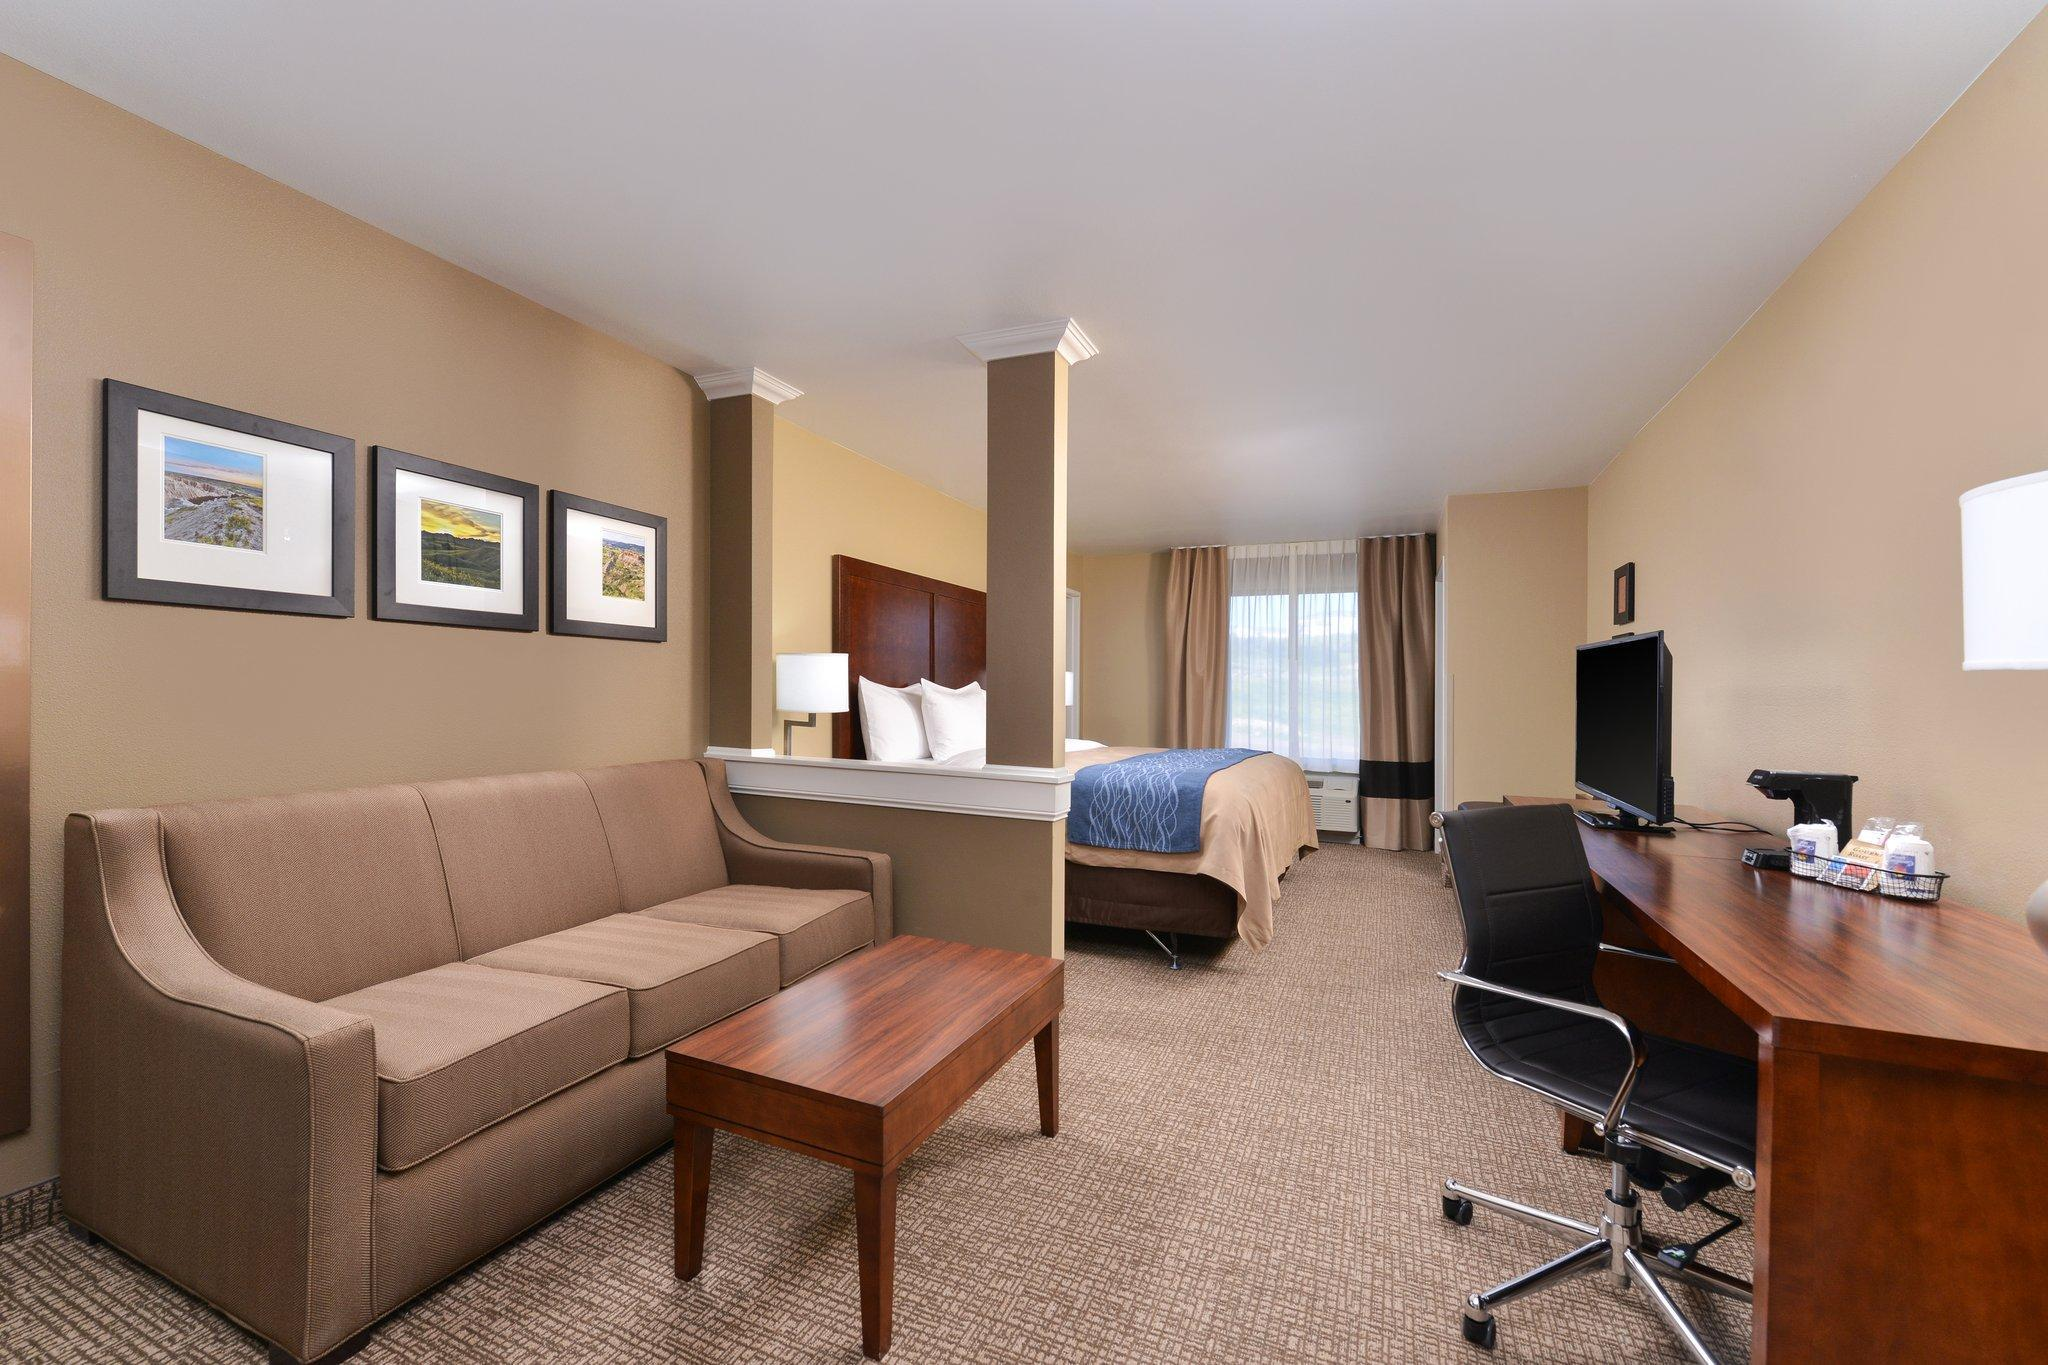 Review Comfort Inn and Suites Mandan - Bismarck